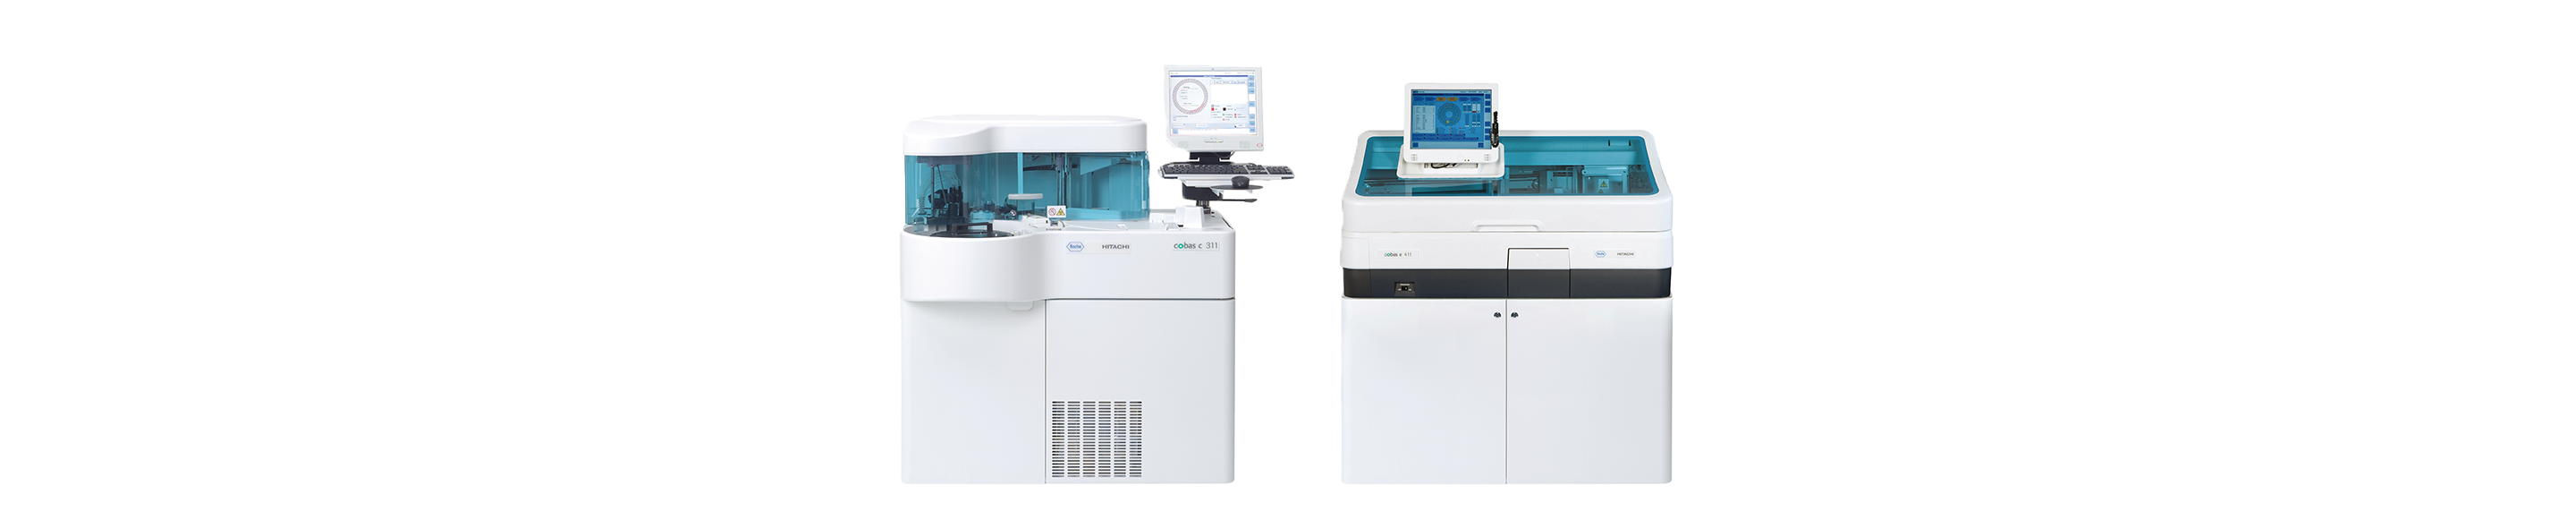 cobas 4000 analyzer series